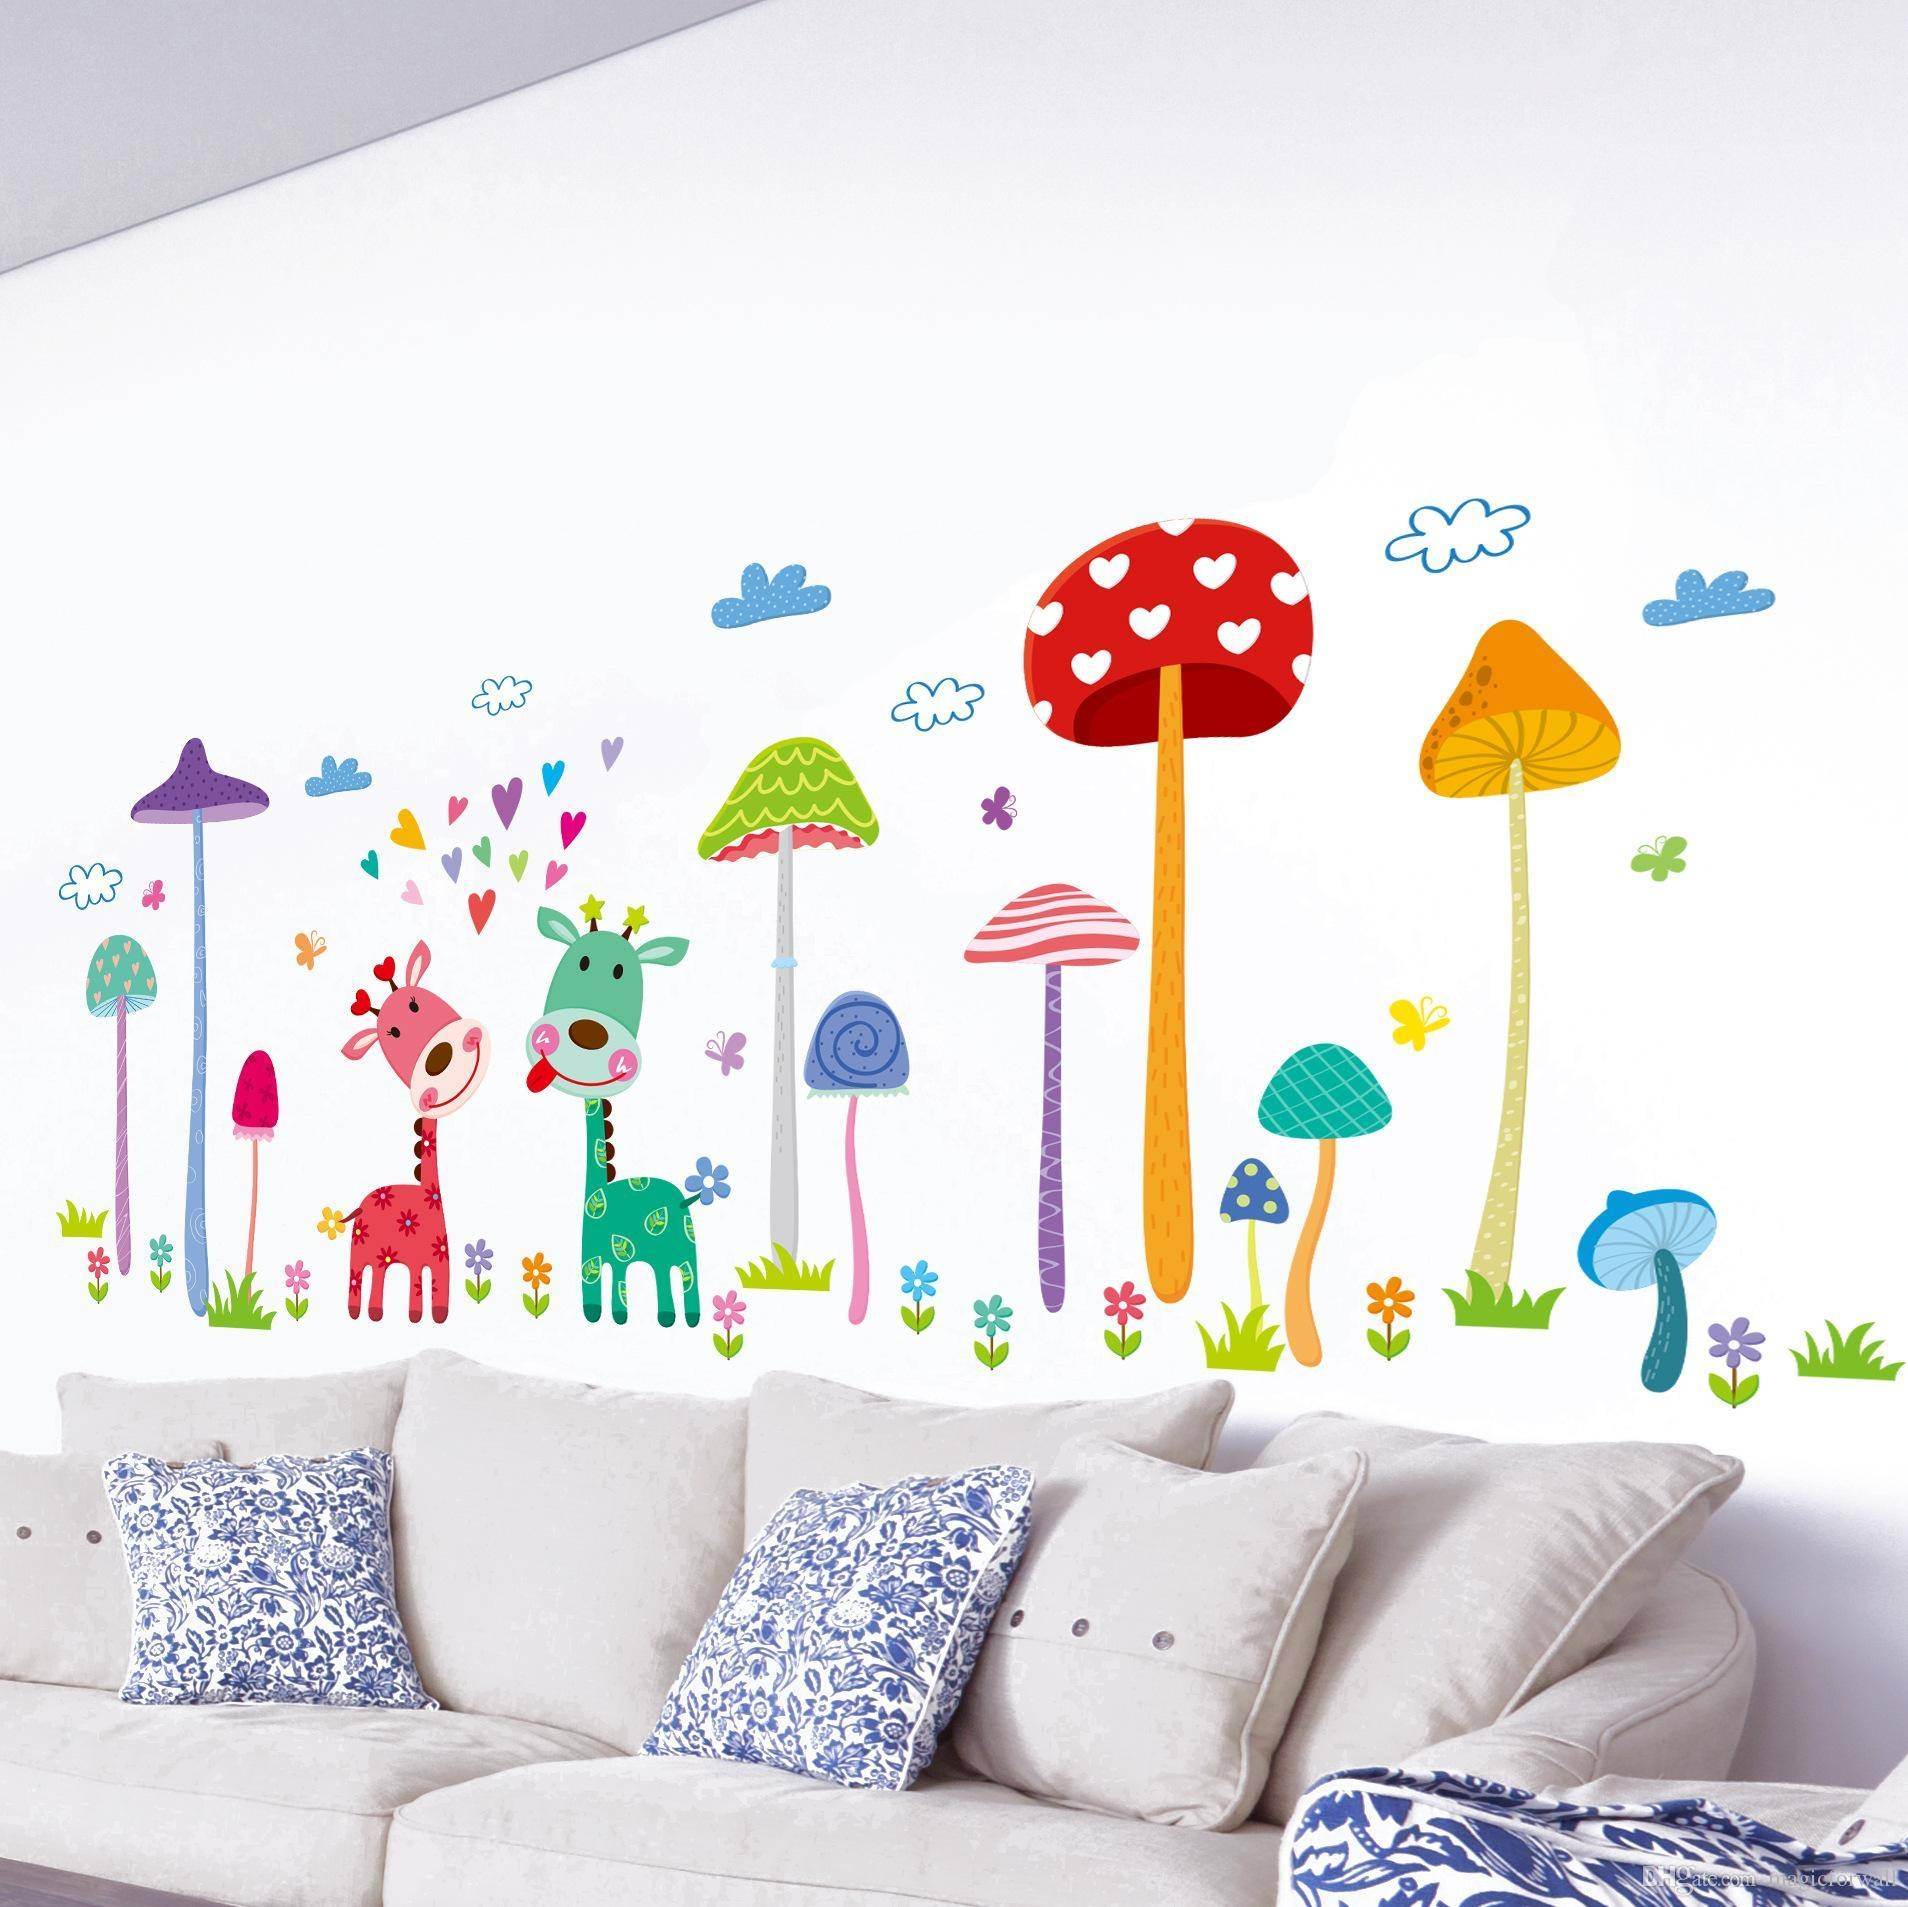 Forest Mushroom Deer Animals Home Wall Art Mural Decor Kids Babies Within Most Recently Released Animal Wall ArtStickers (View 8 of 20)